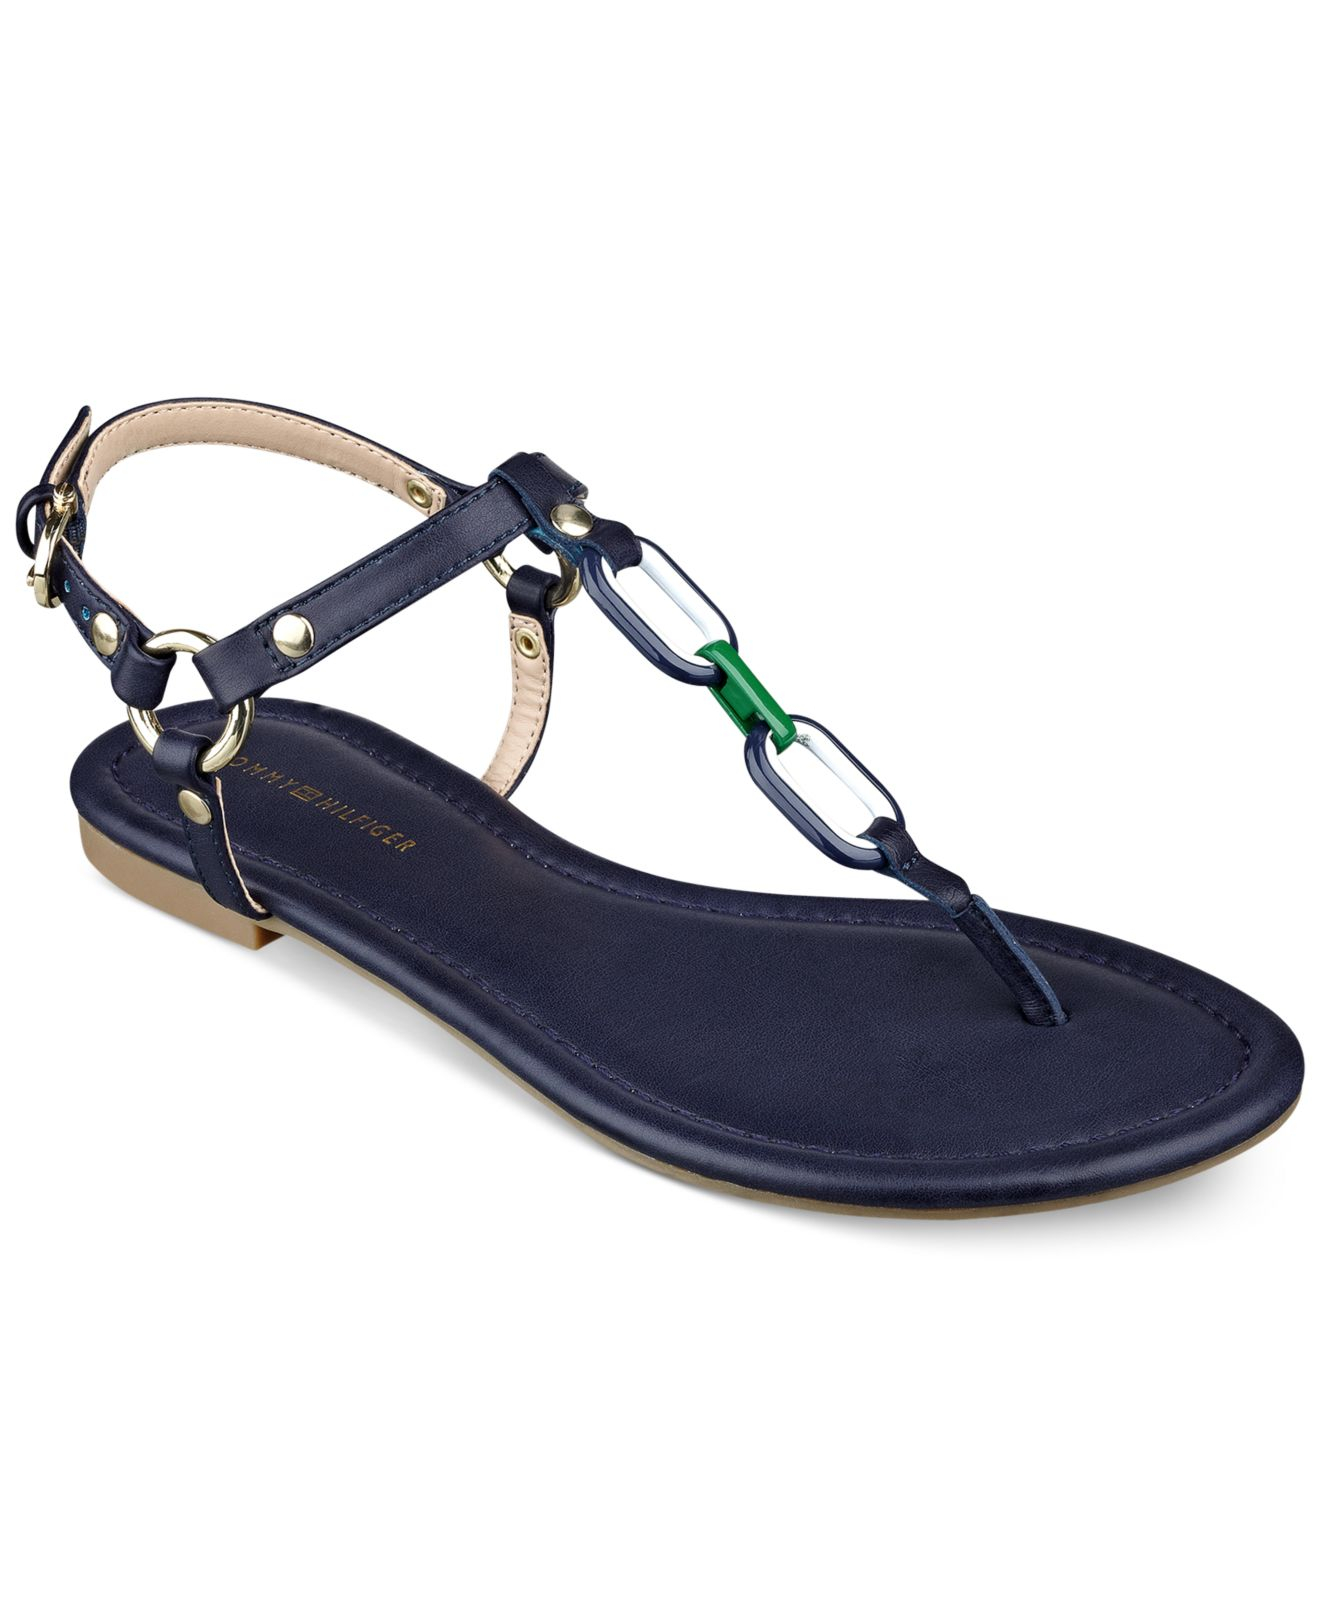 Tommy hilfiger Shelley Flat Thong Sandals in Blue | Lyst